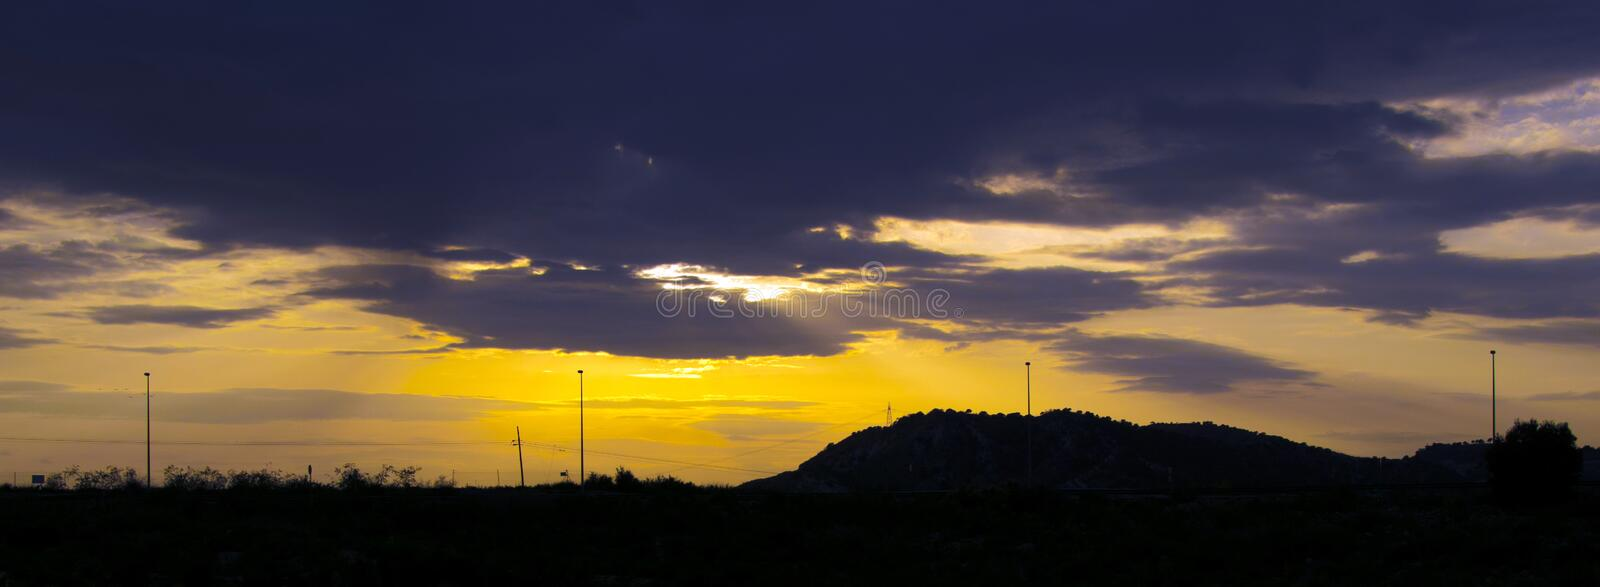 Dramatic Sunset Sky of Vibrant Orange, Yellow and Purple Sky Colors with Silhouettes of Lanterns stock photos